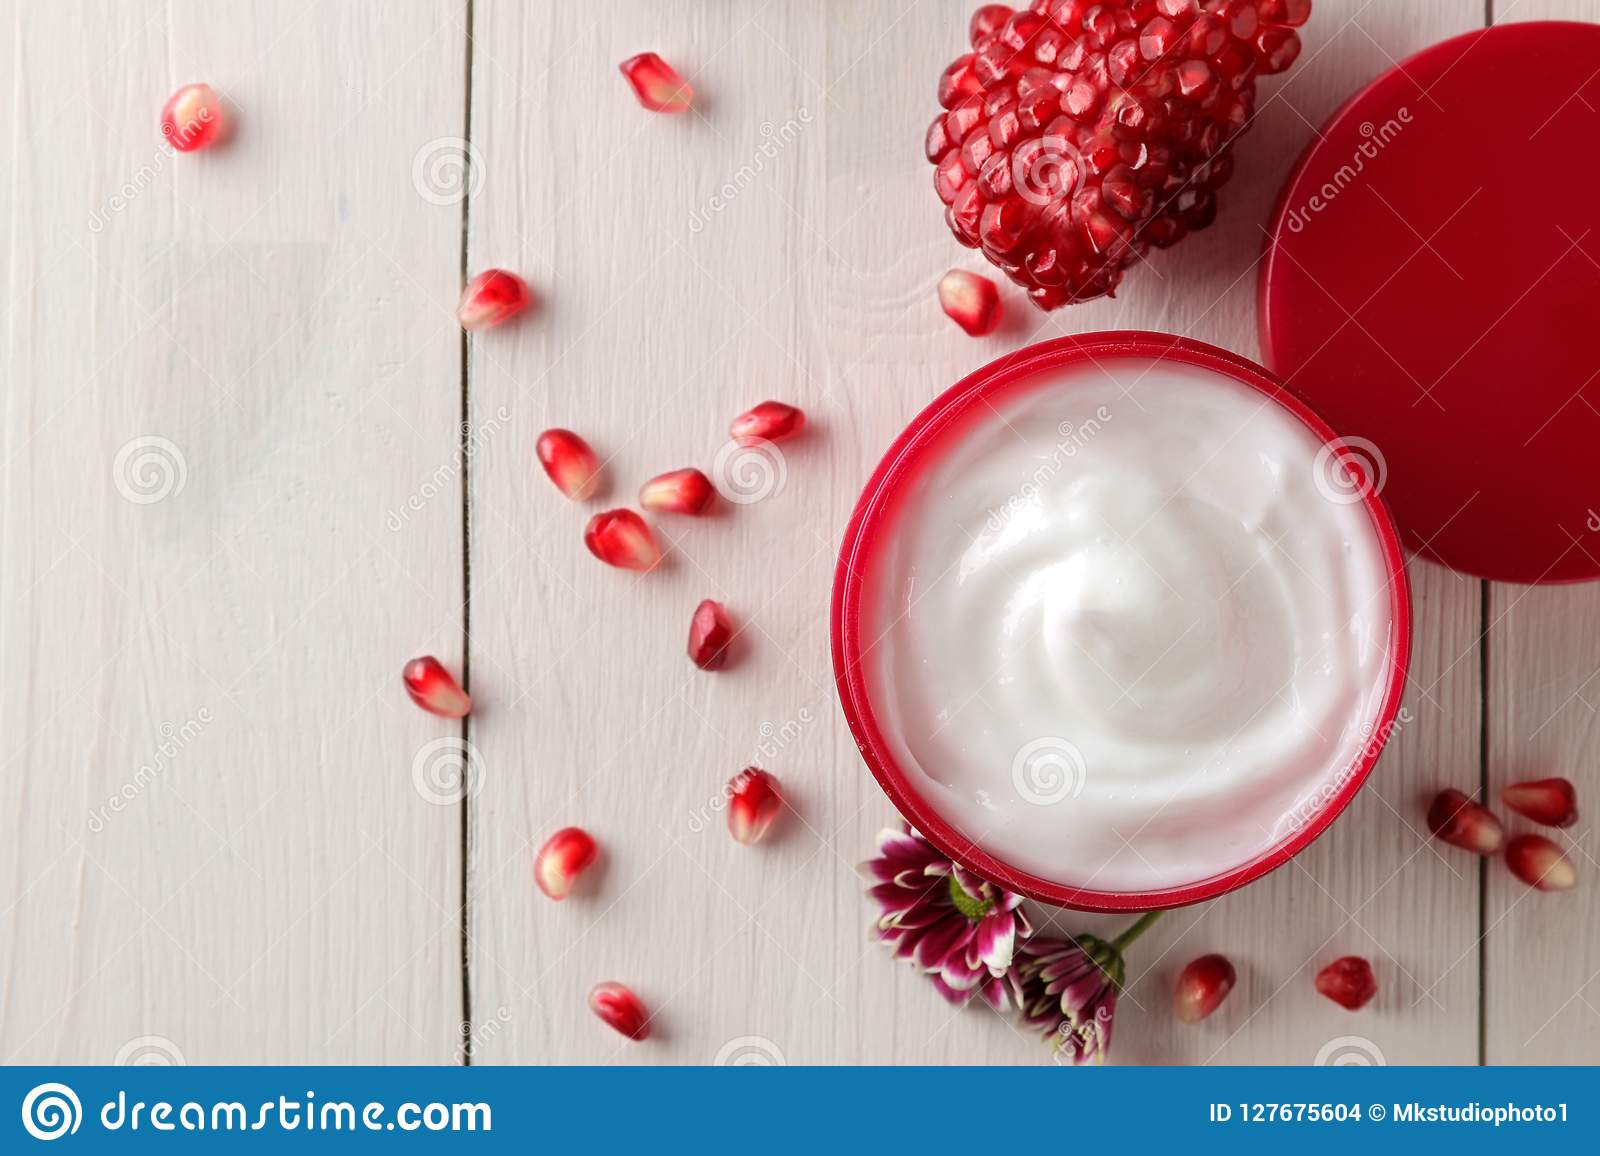 Cosmetic cream in a red jar with flowers and fresh pomegranate on a white wooden table. pomegranate extract. cosmetics.